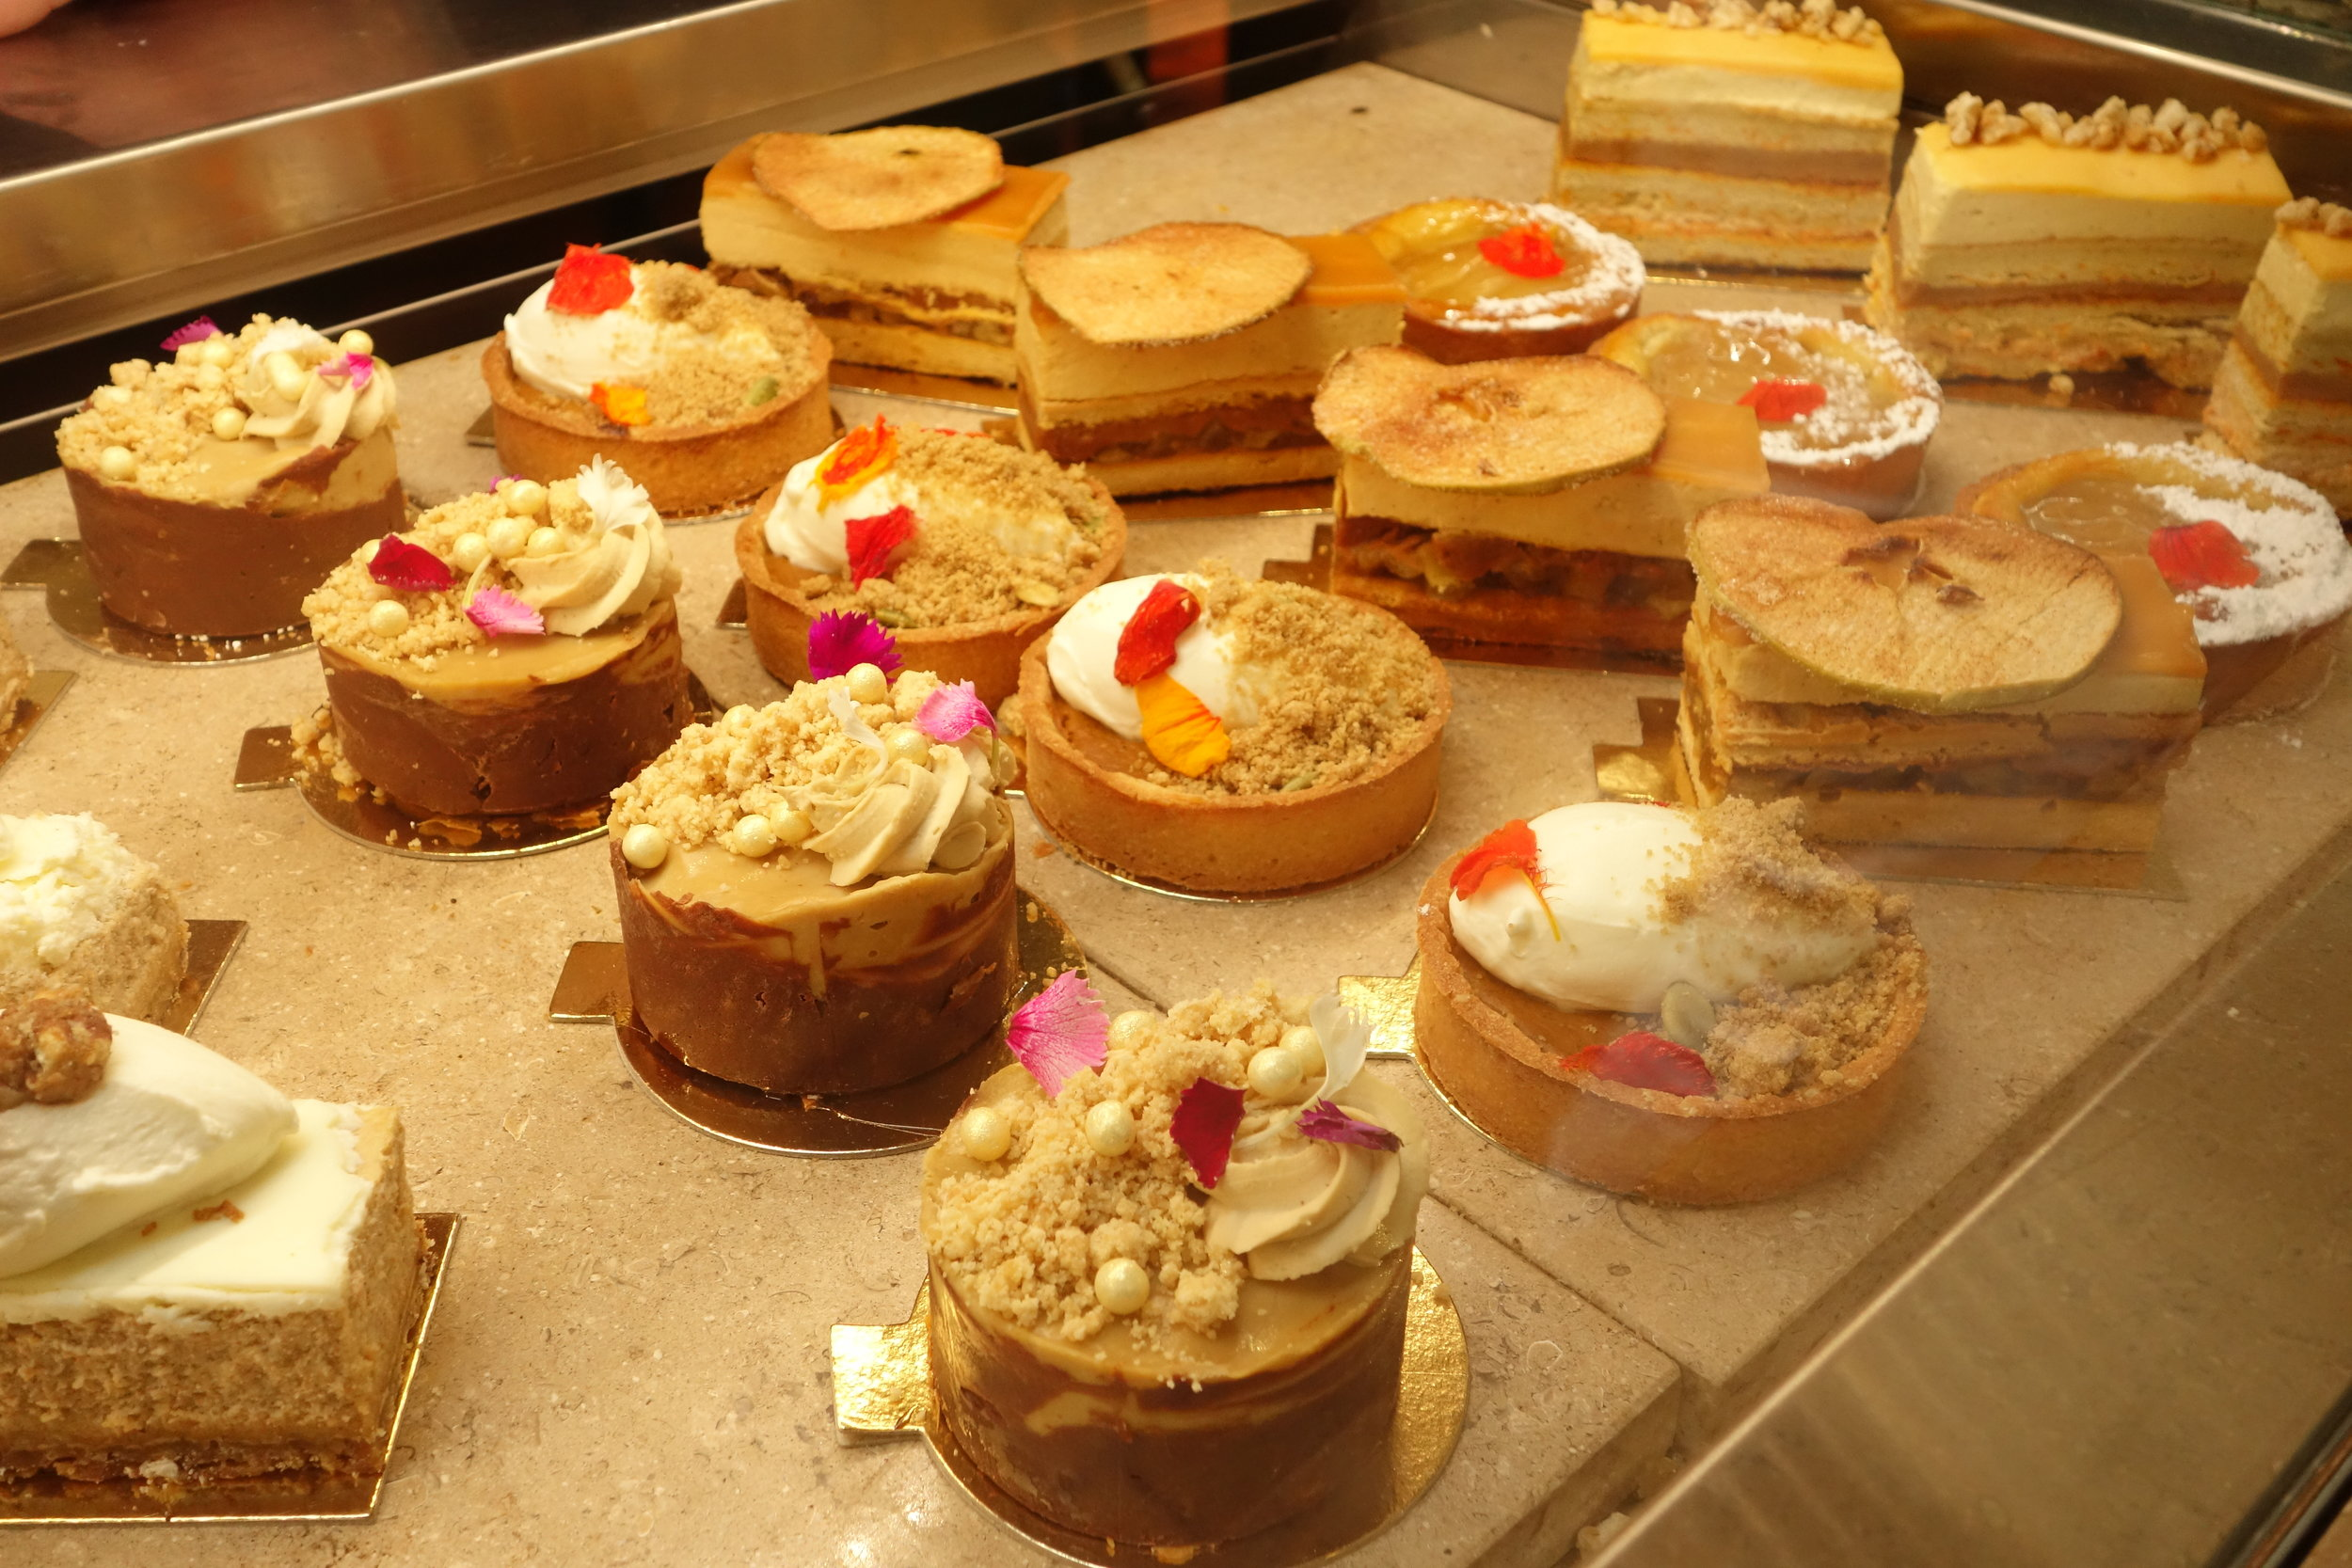 le-marais-bakery-and-bistro-marina-sf-san-francisco-sf-food-photography-sandy-by-the-bay-blog-15